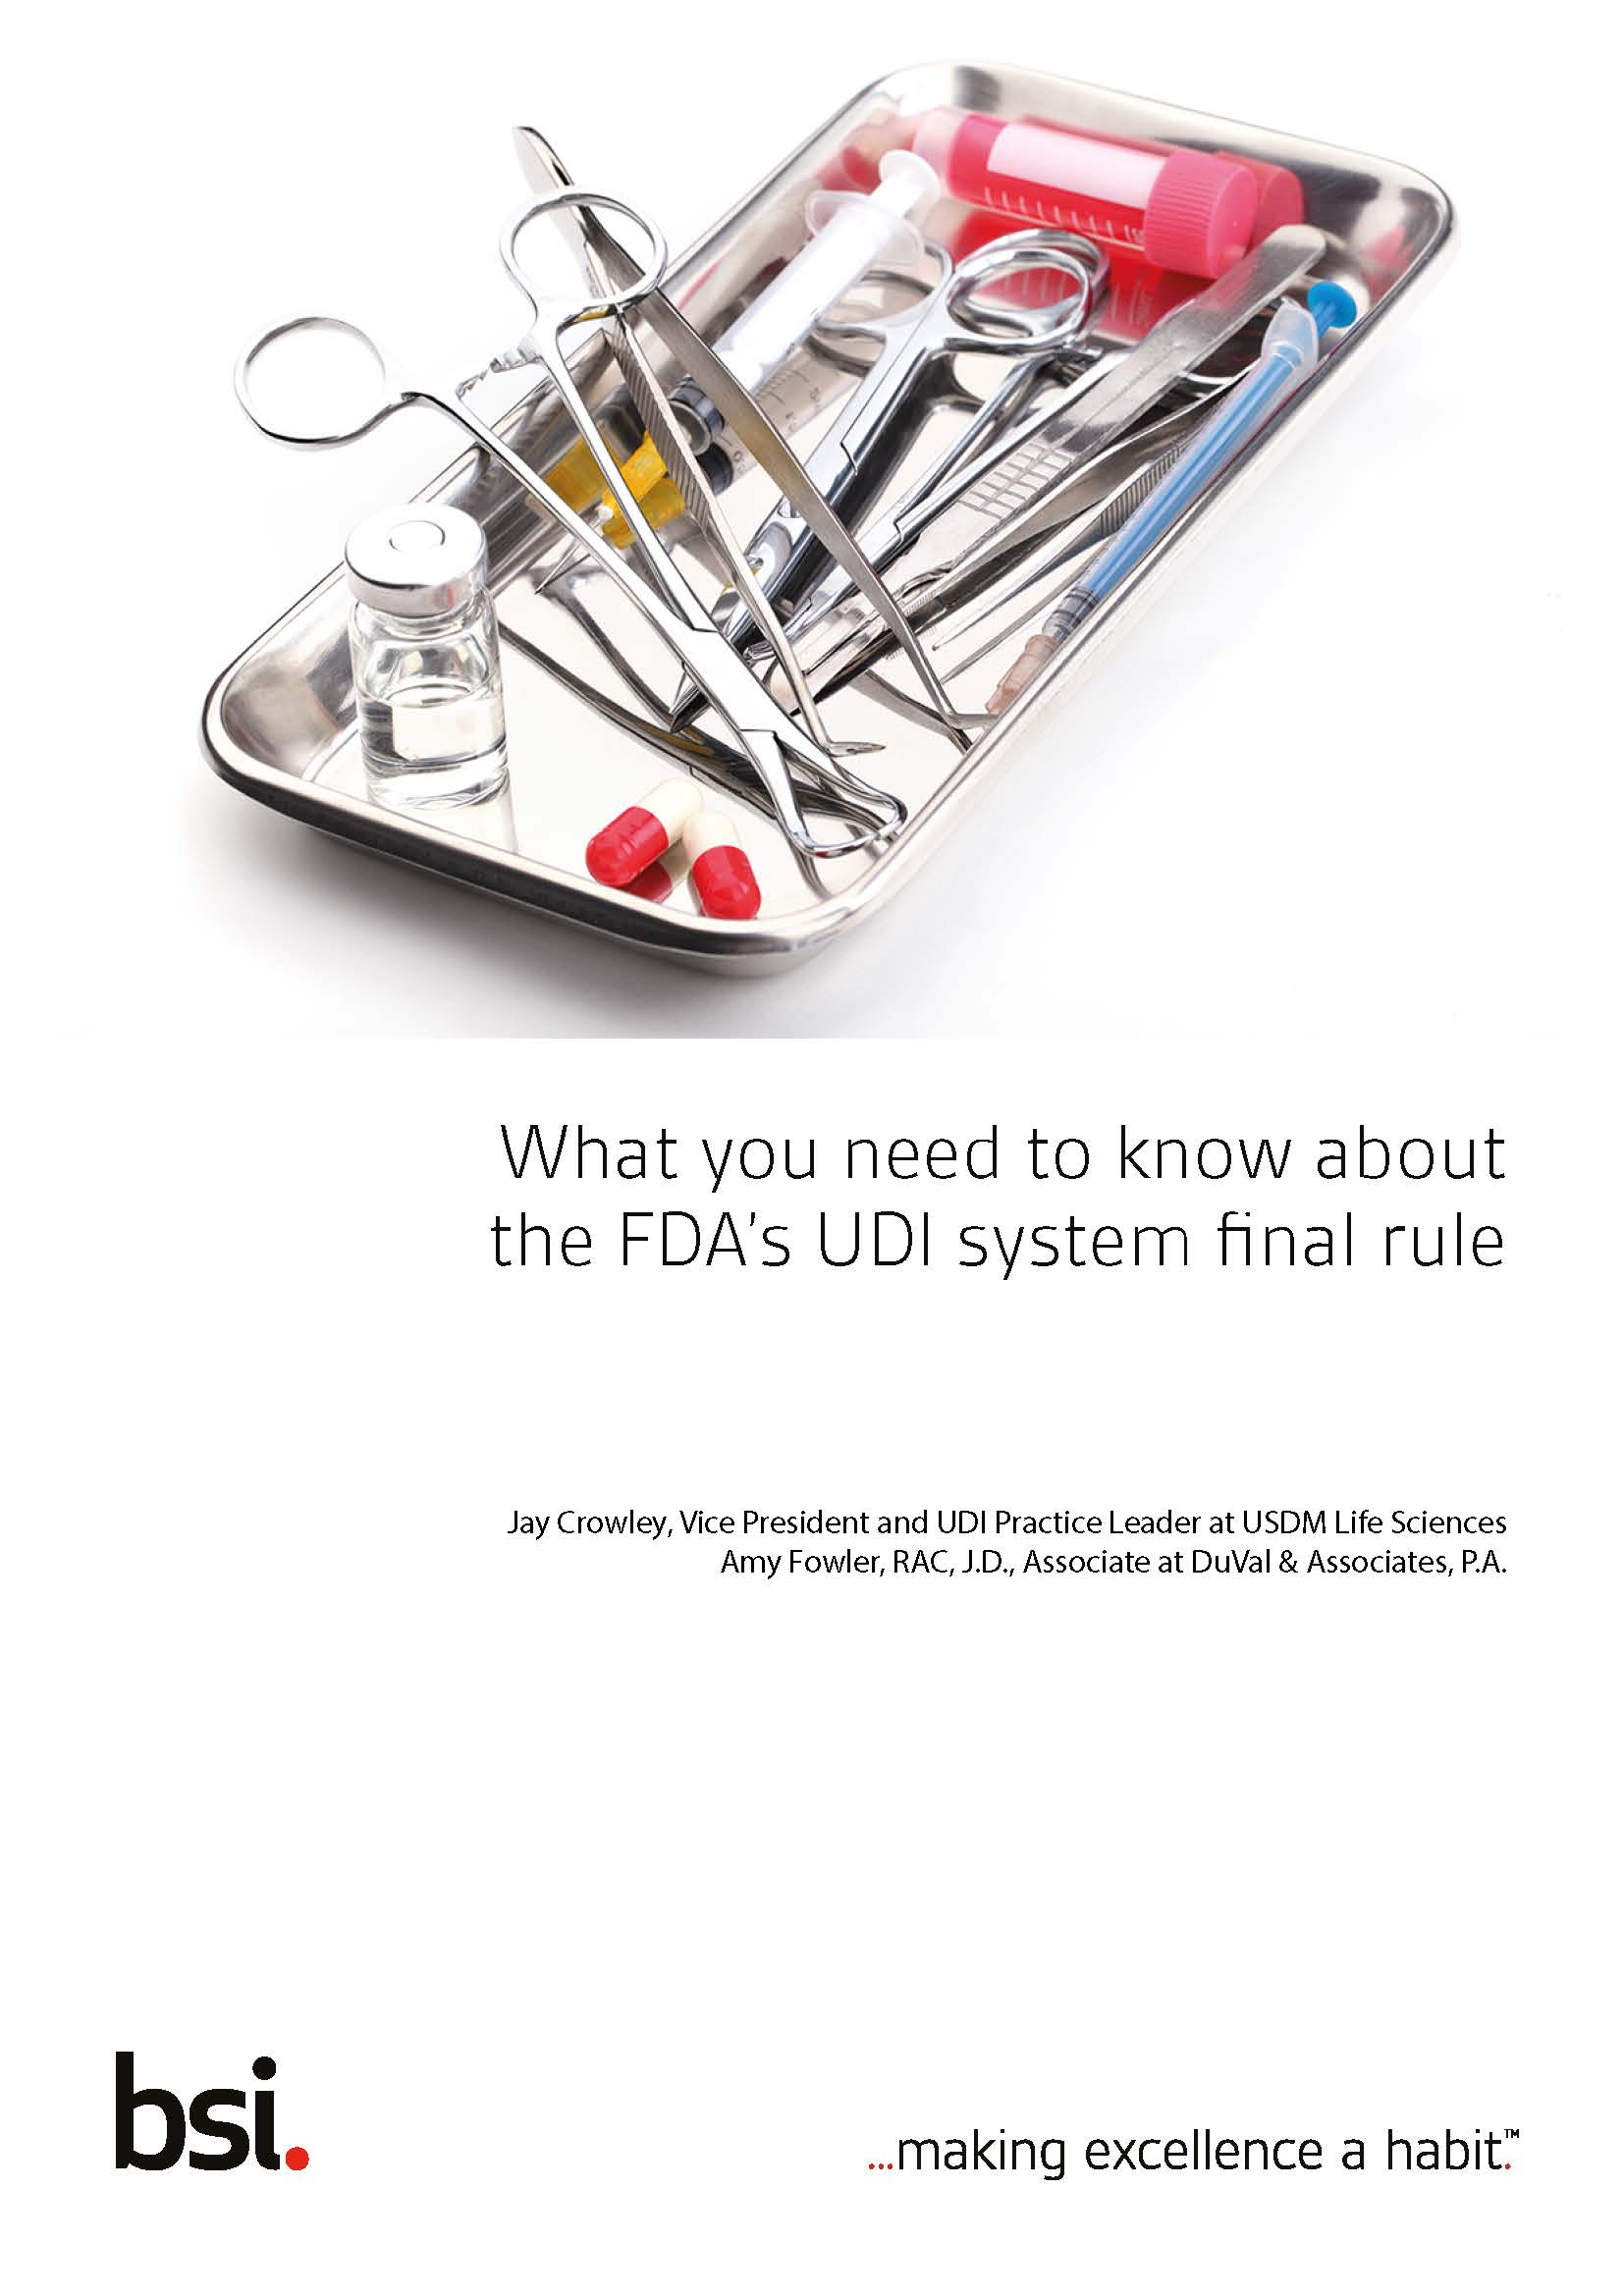 What you need to know about the FDA's UDI system final rule